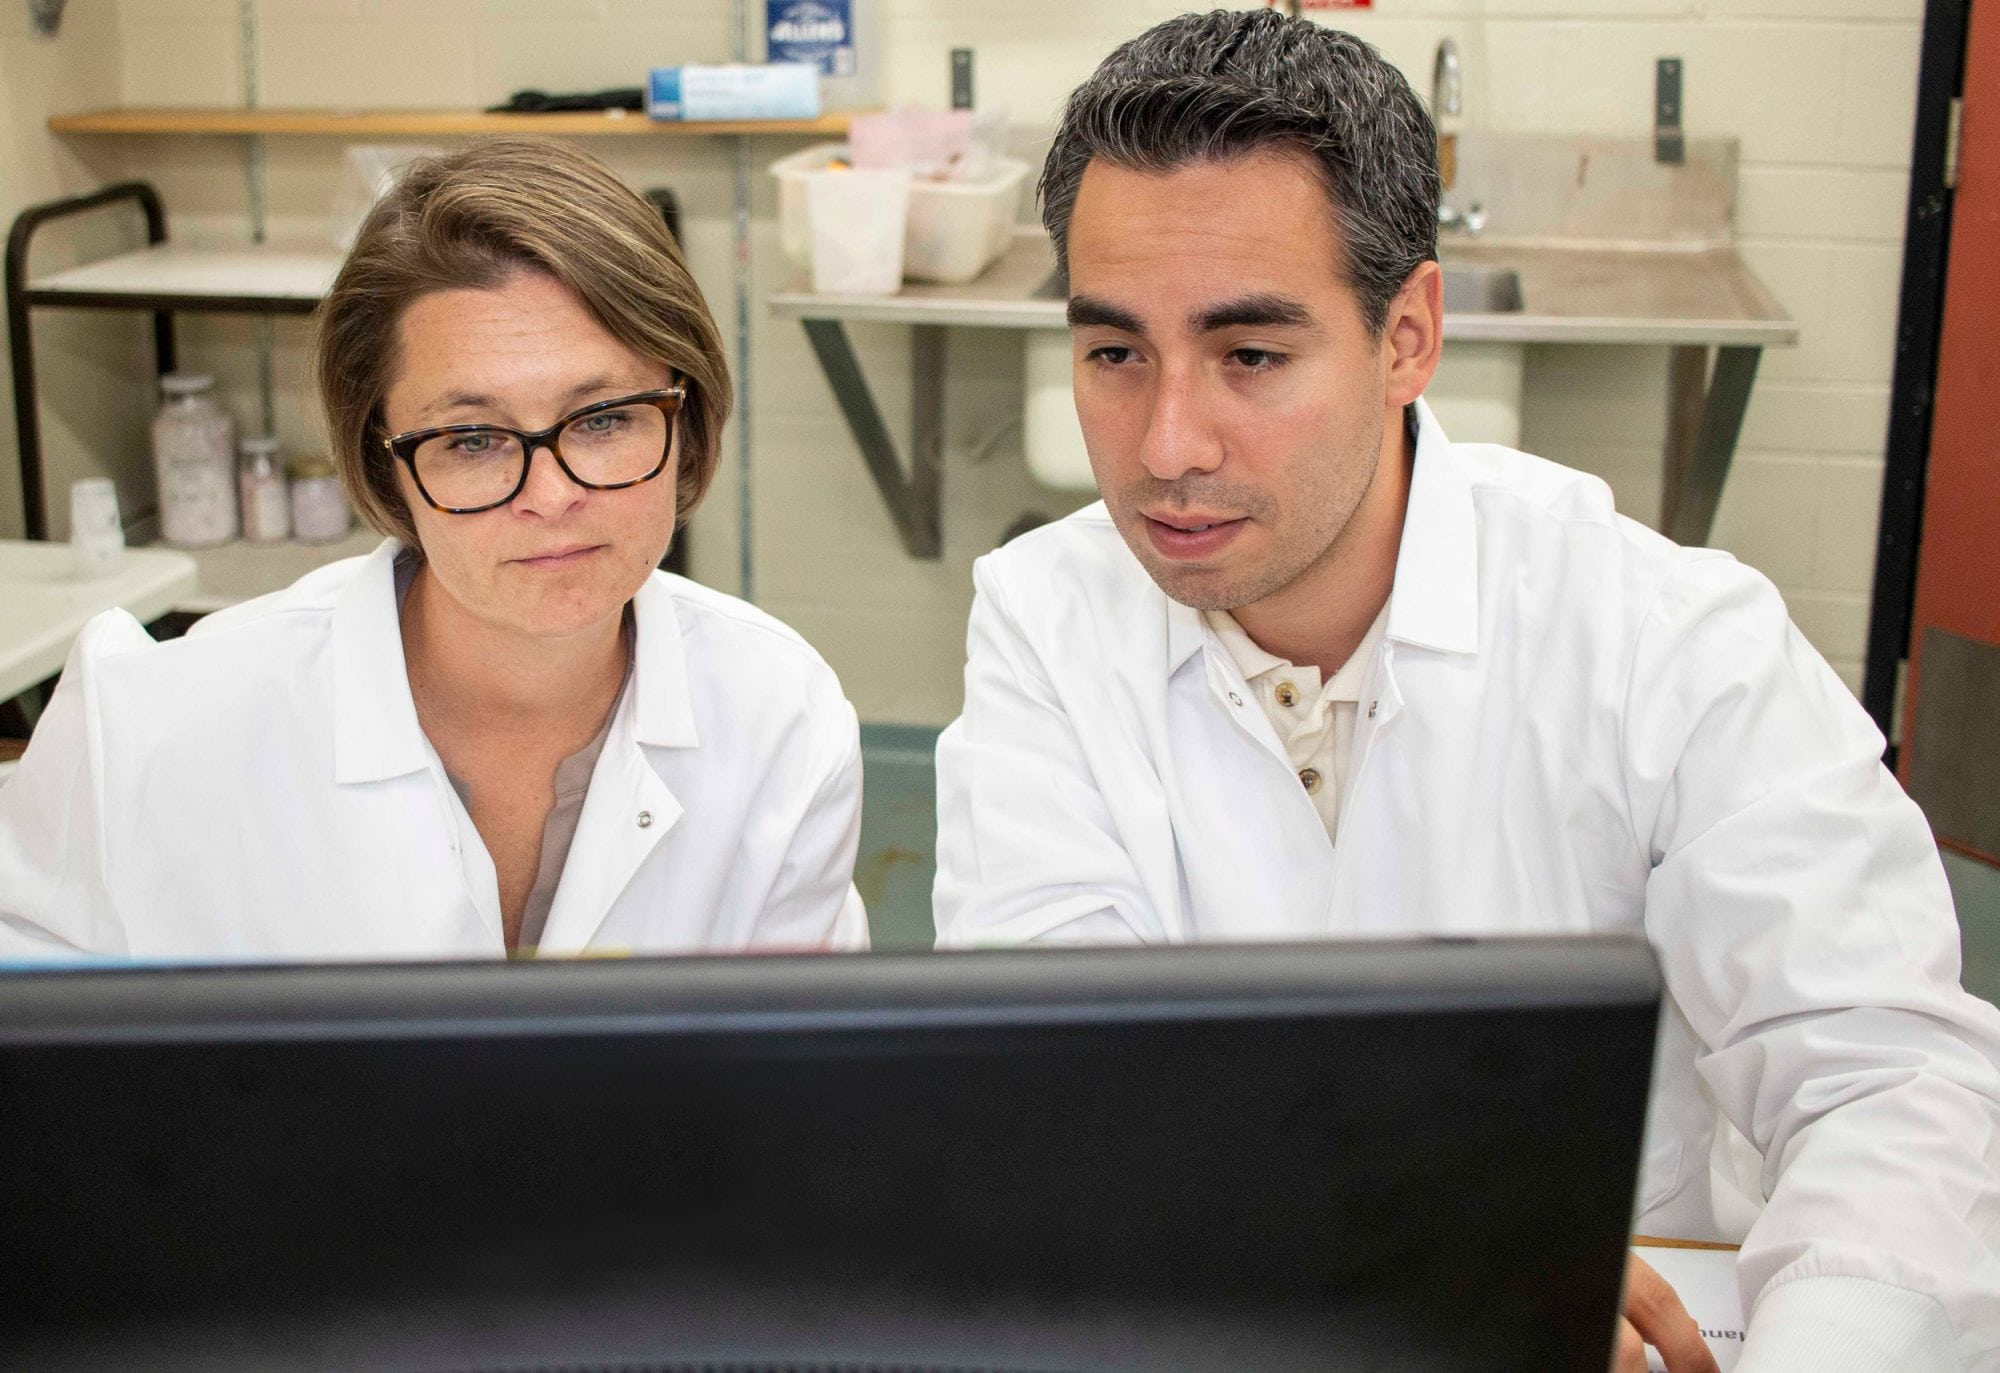 Food from Thought principal investigator Kate Shoveller and postdoc Wilfredo Mansillo sitting behind a computer in a lab.